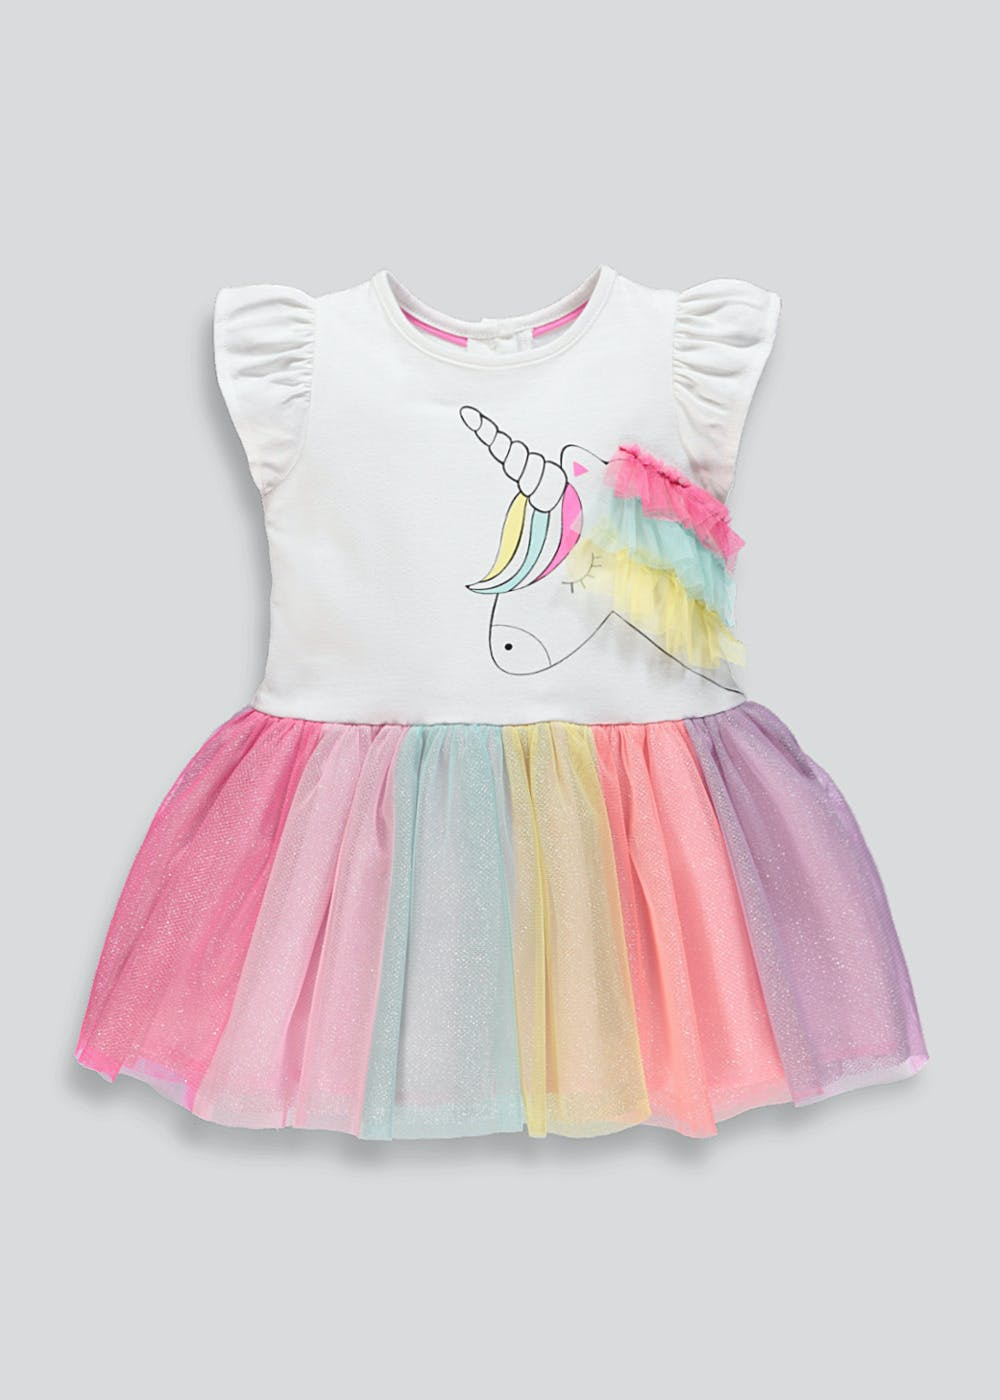 Apron Girls ~ To Fit 5-6yrs ~ Cooking Kitchen, Dining & Bar Other Baking Accessories Craft With Aqua Whales